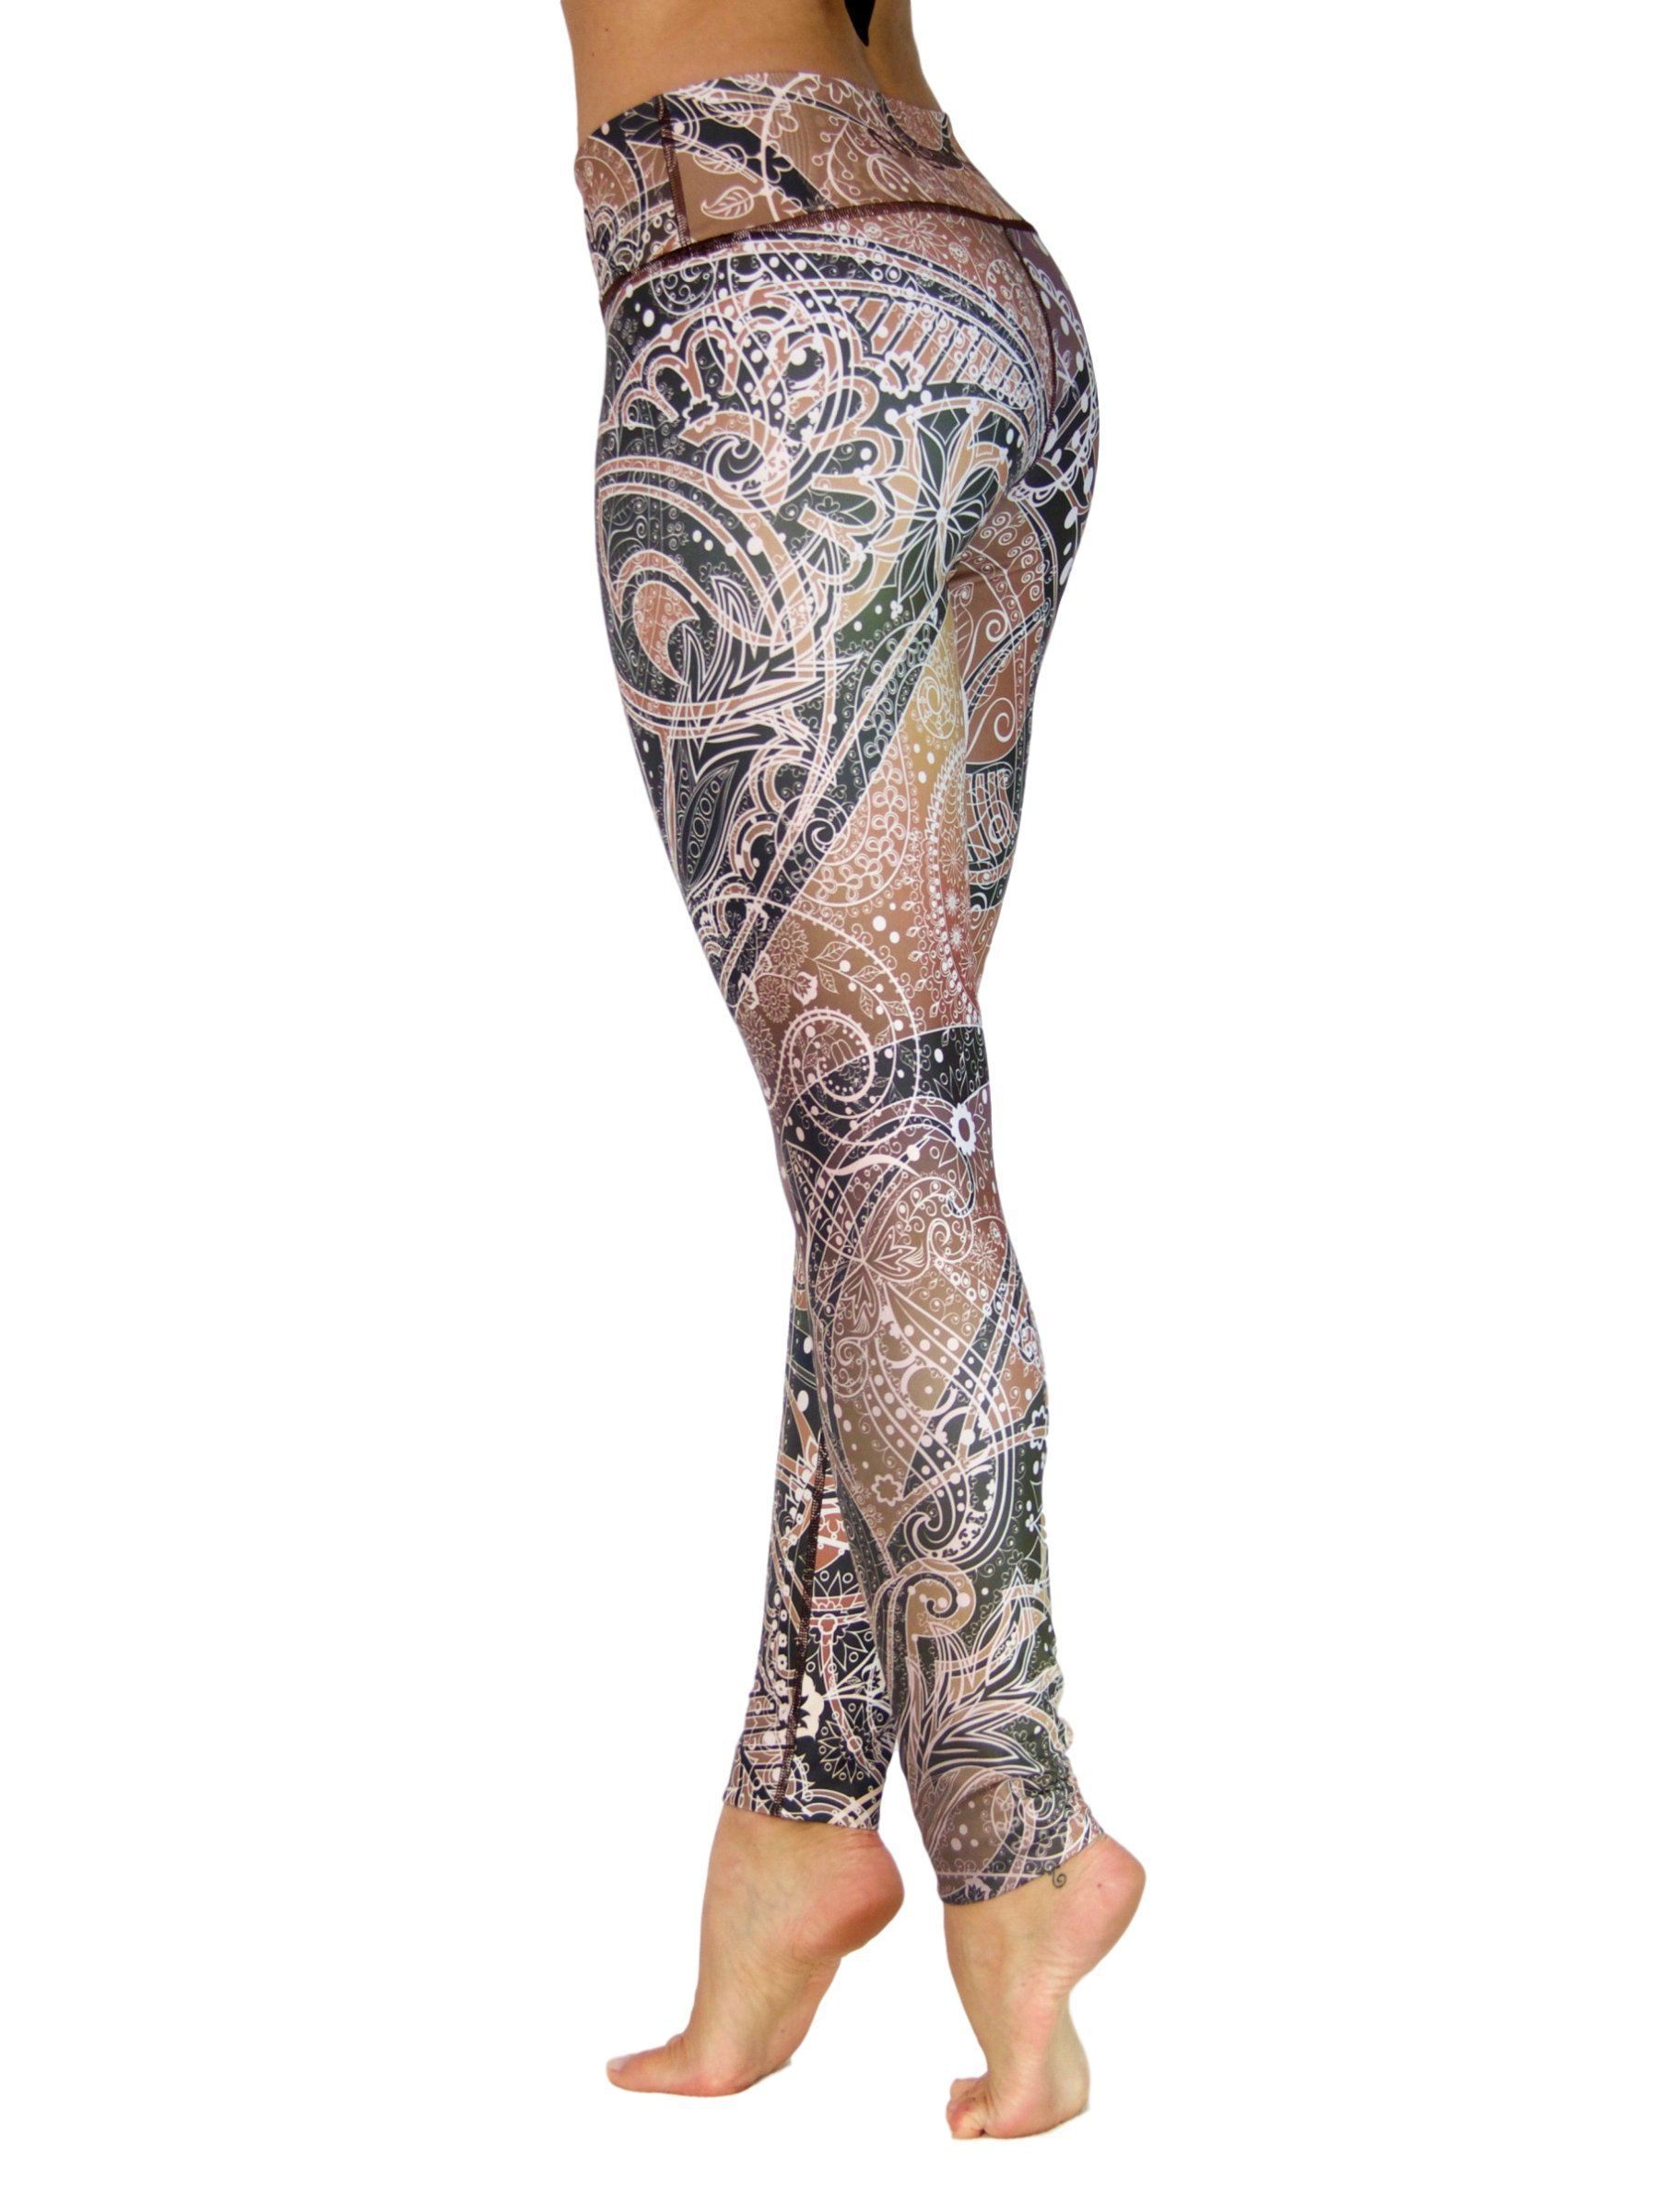 Funky Fall by Niyama - High Quality, , Yoga Legging for Movement Artists.